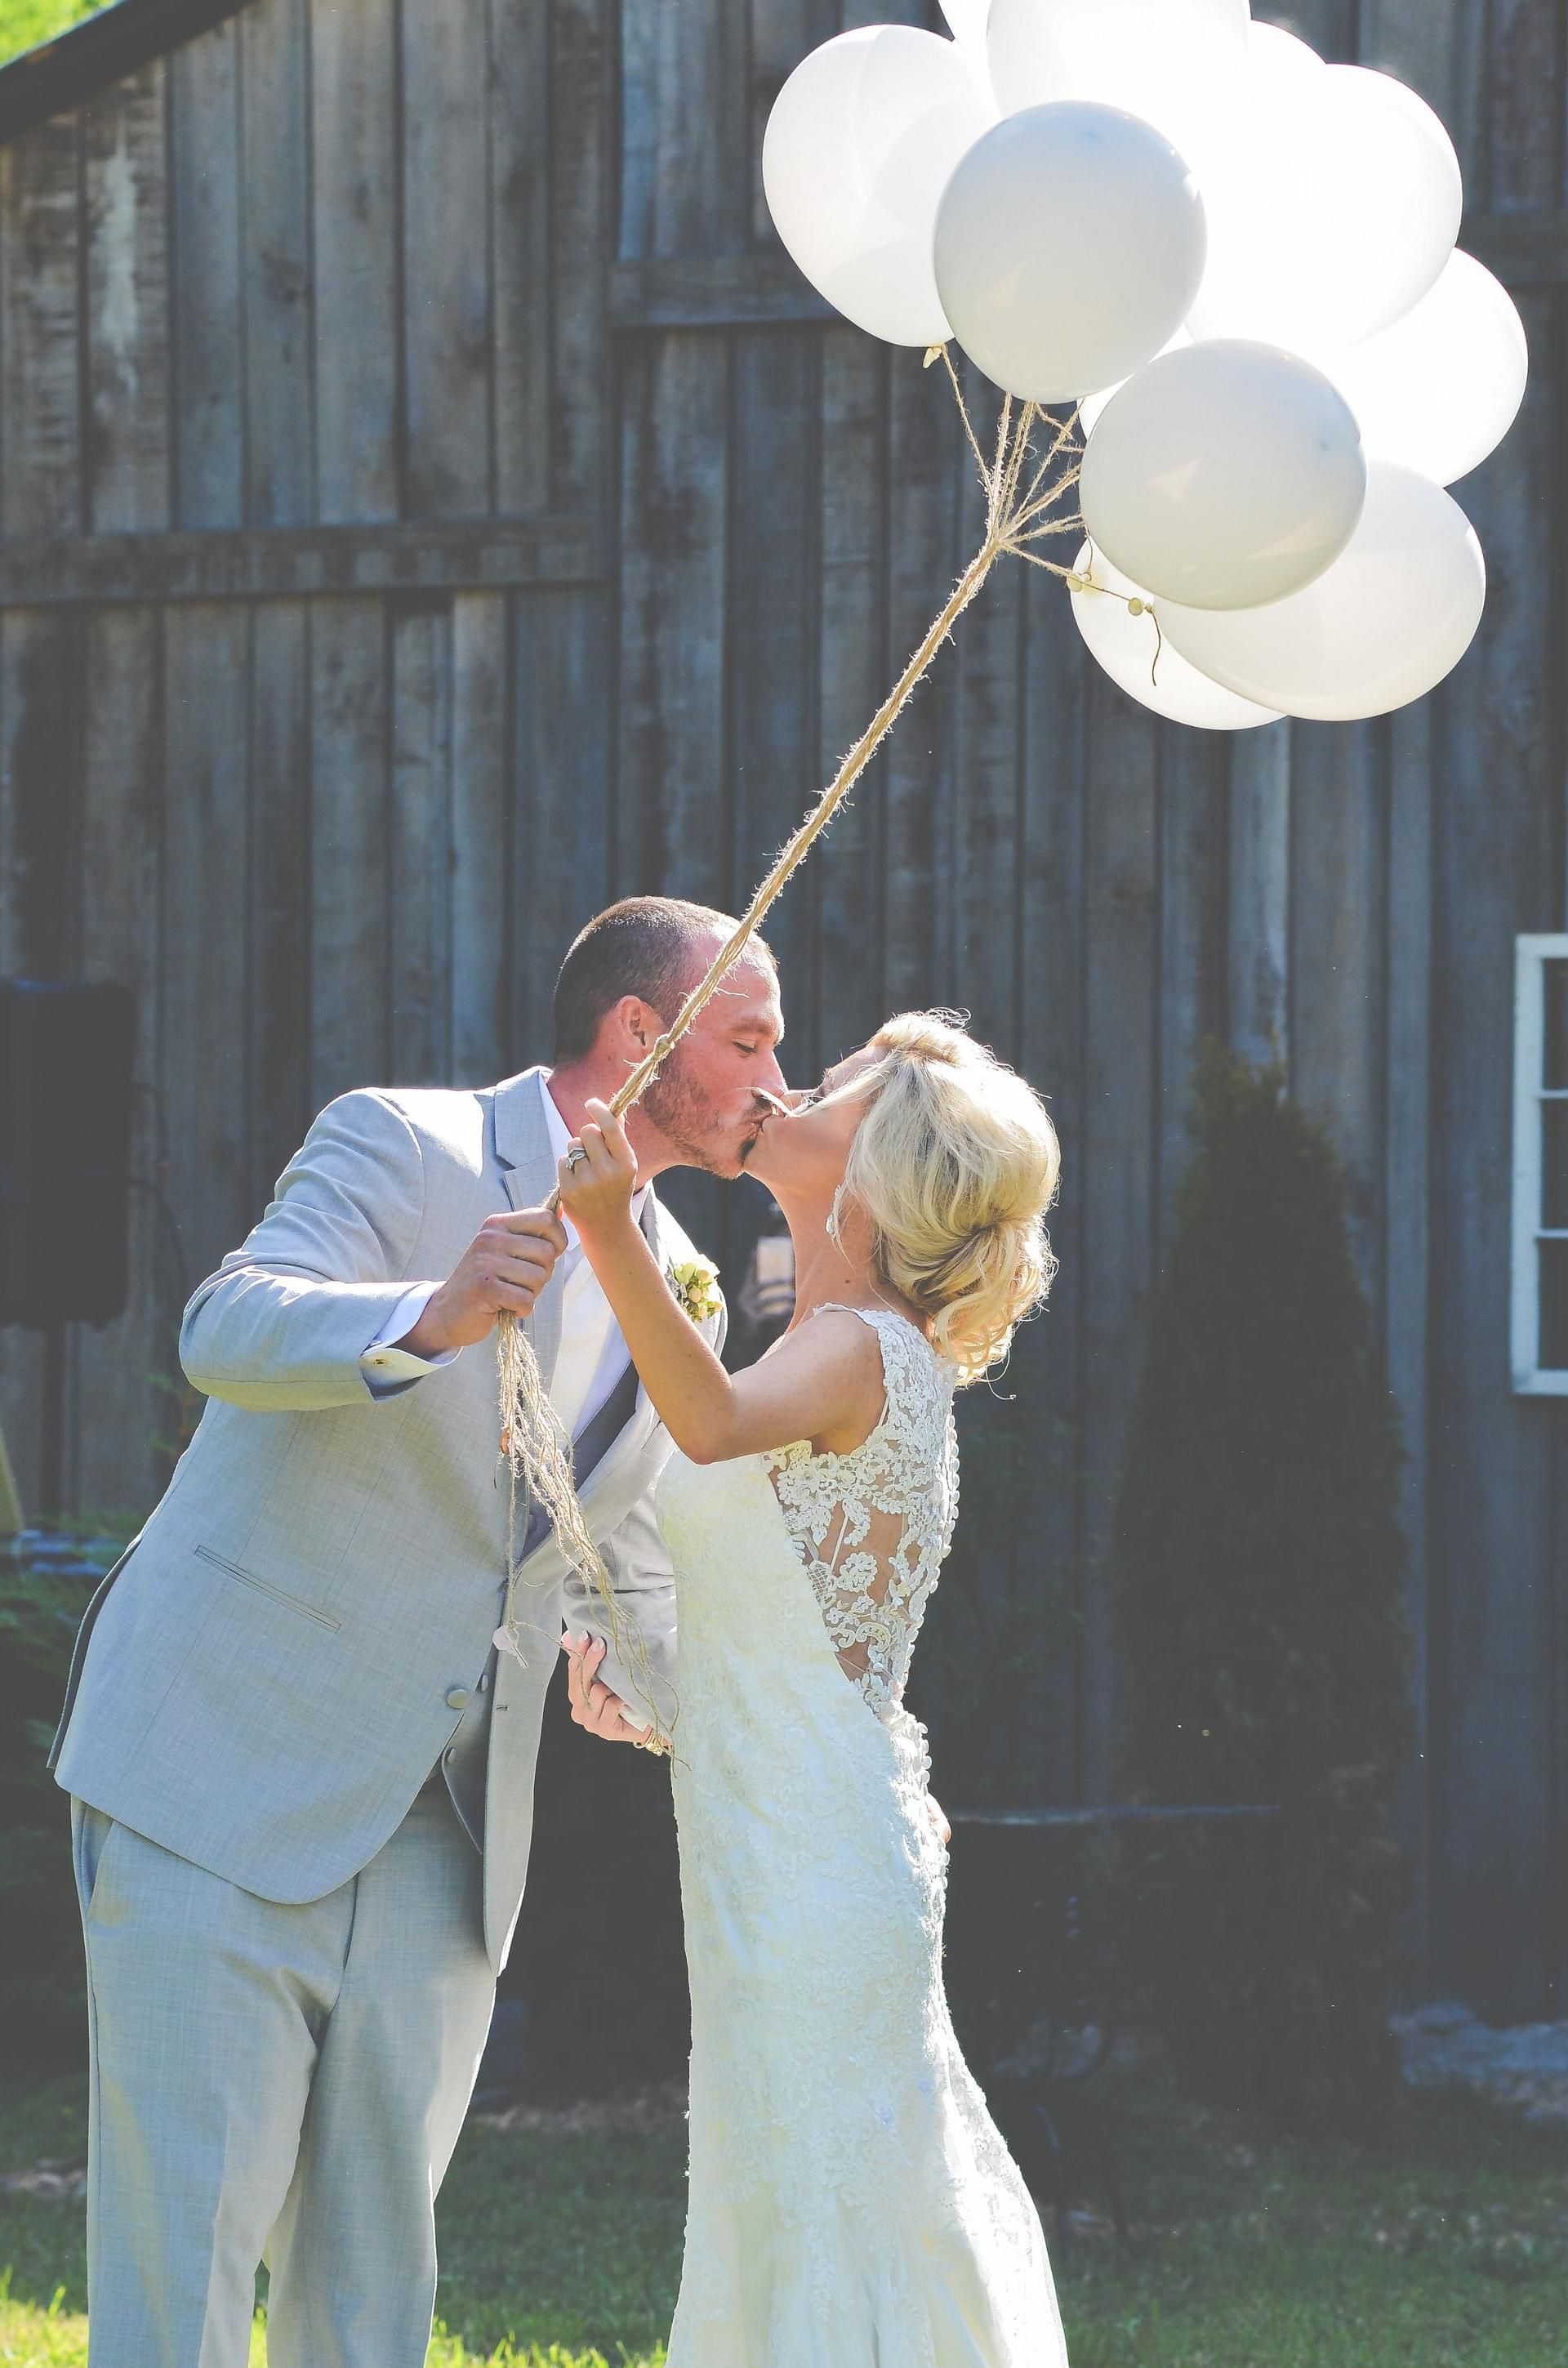 Mother of the bride dresses for outdoor country wedding  The Smarter Way to Wed  Futre Wedding Ideas  Pinterest  White